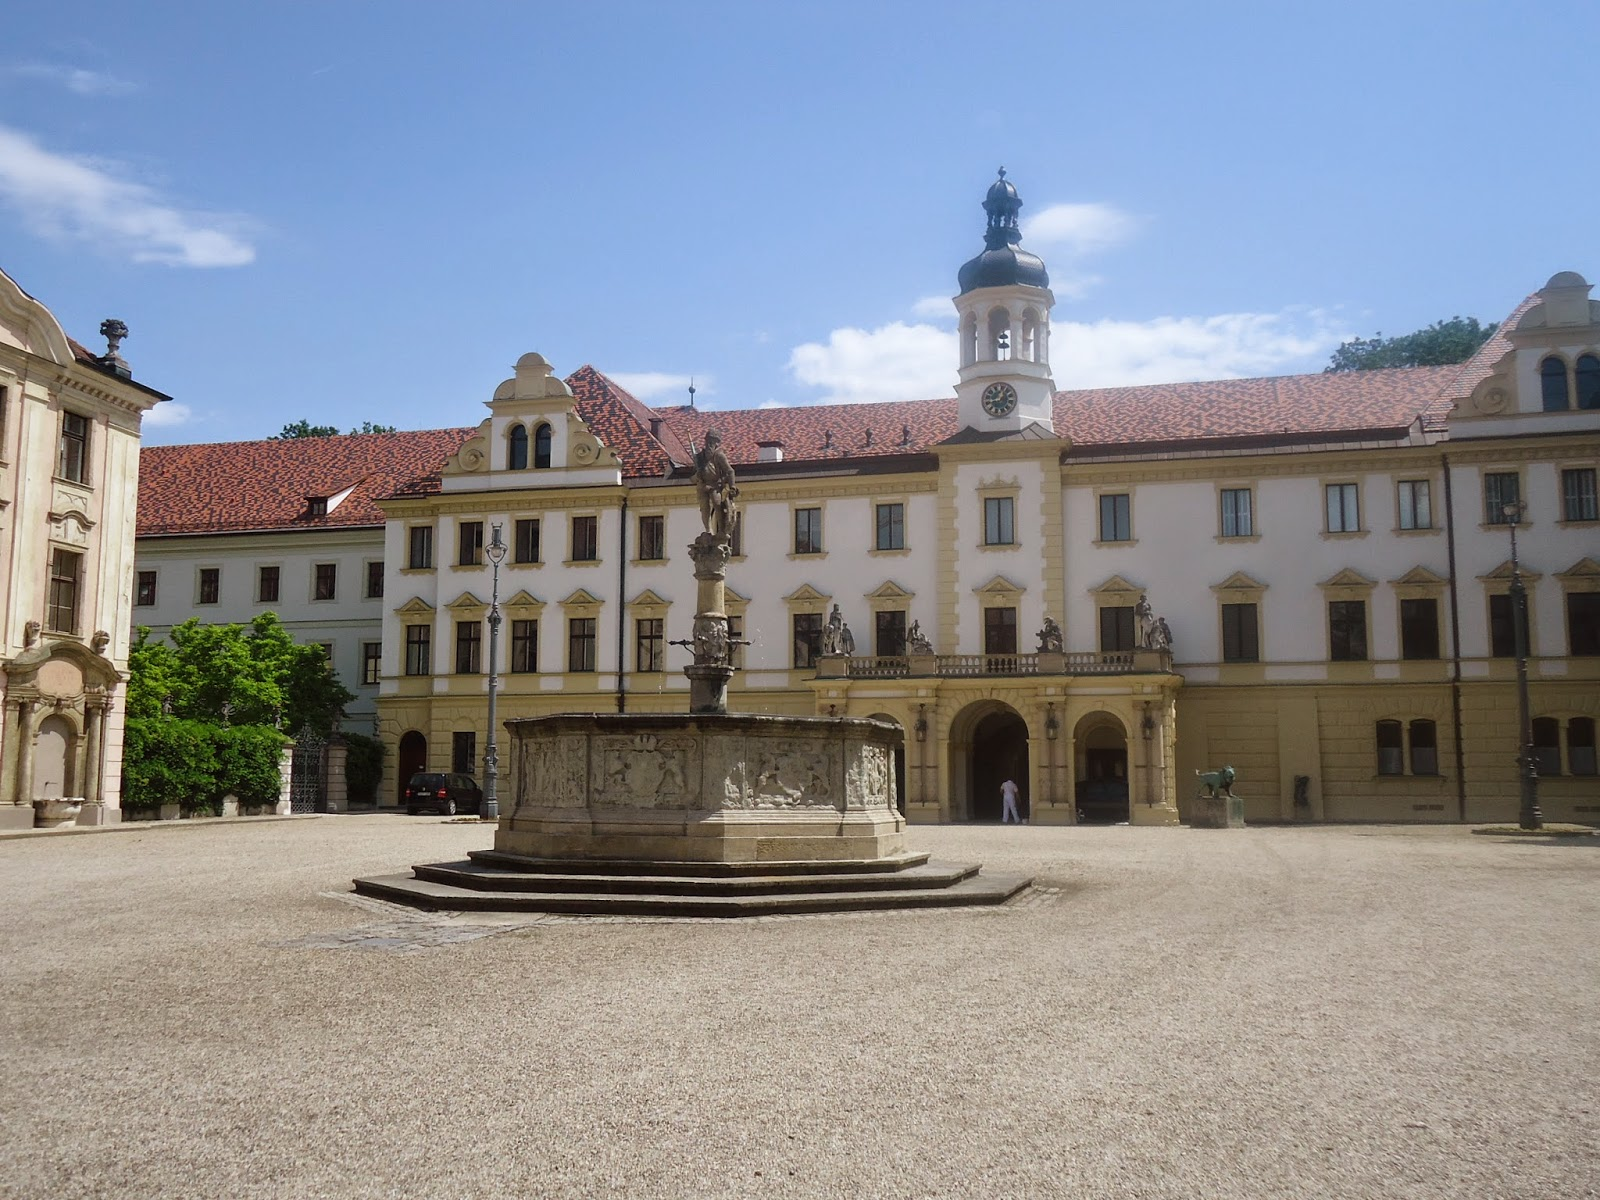 Regensburg Thurn und Taxis Castle Royal Destination